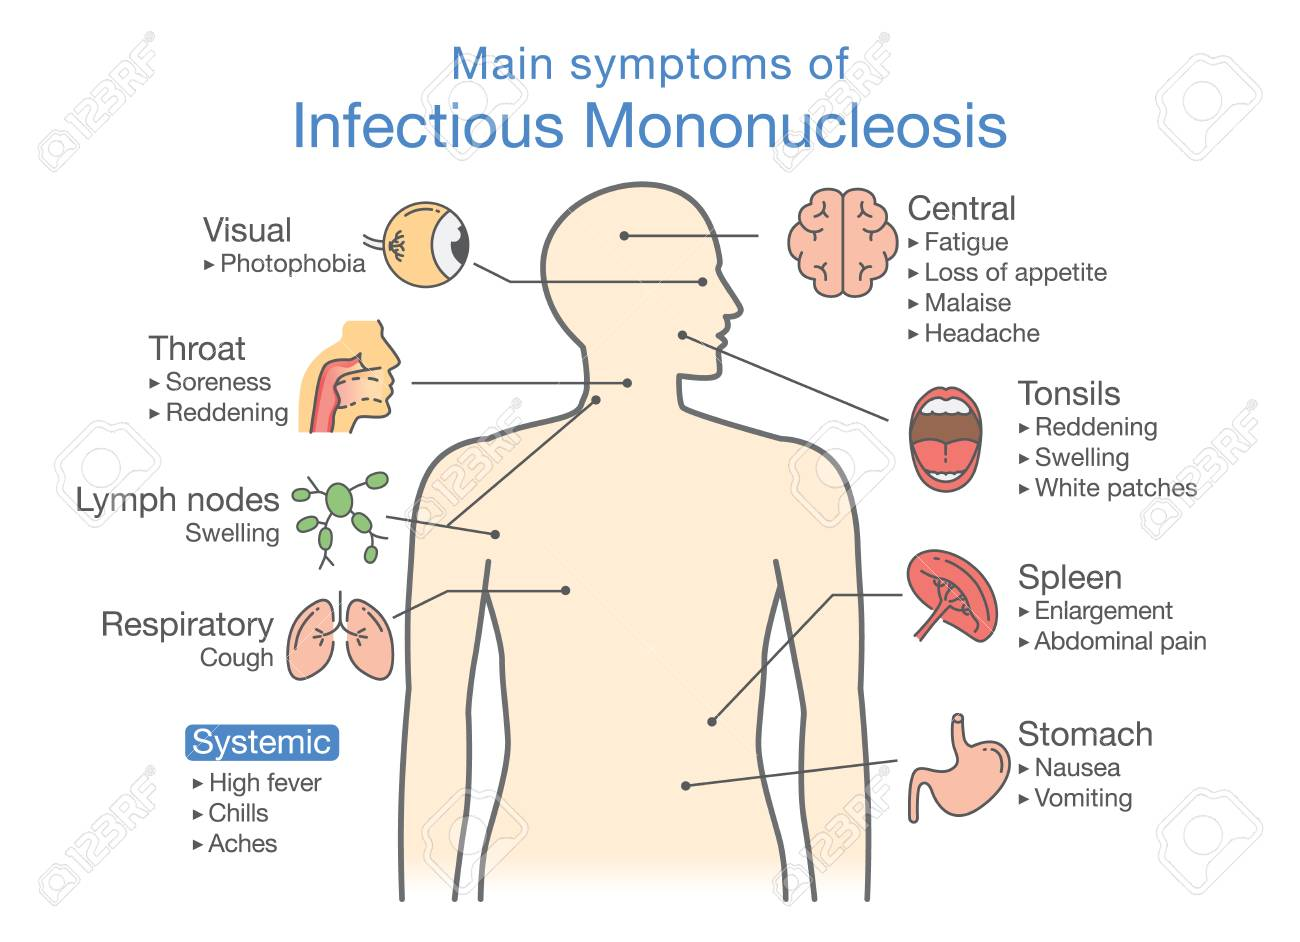 hight resolution of symptoms of infectious mononucleosis disease diagram for diagnose patient of doctor stock vector